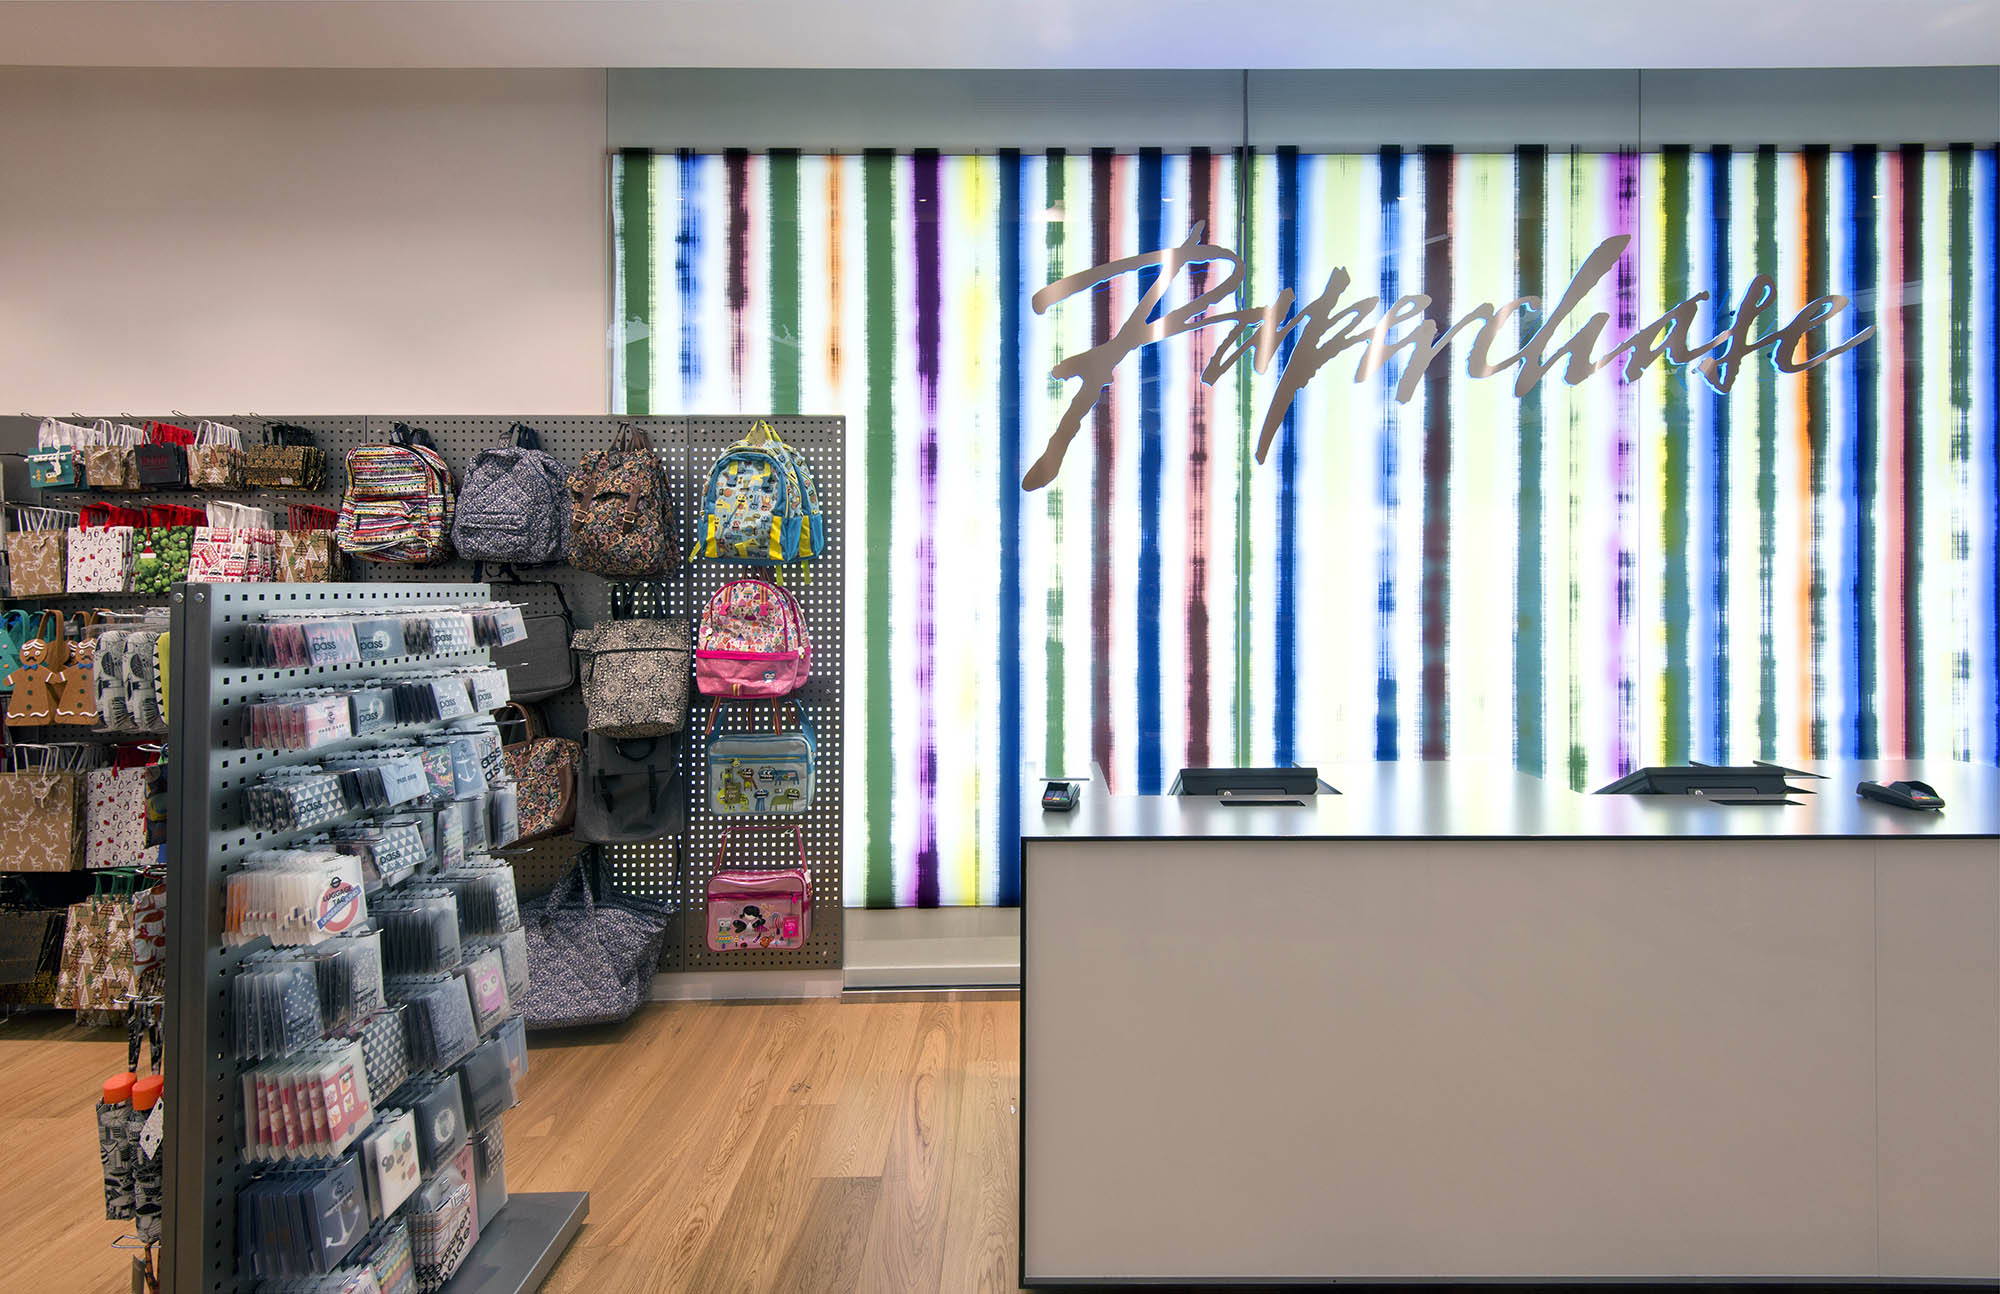 Illuminted back panel at Paperchase Bishopsgate, featuring Paperchase logo